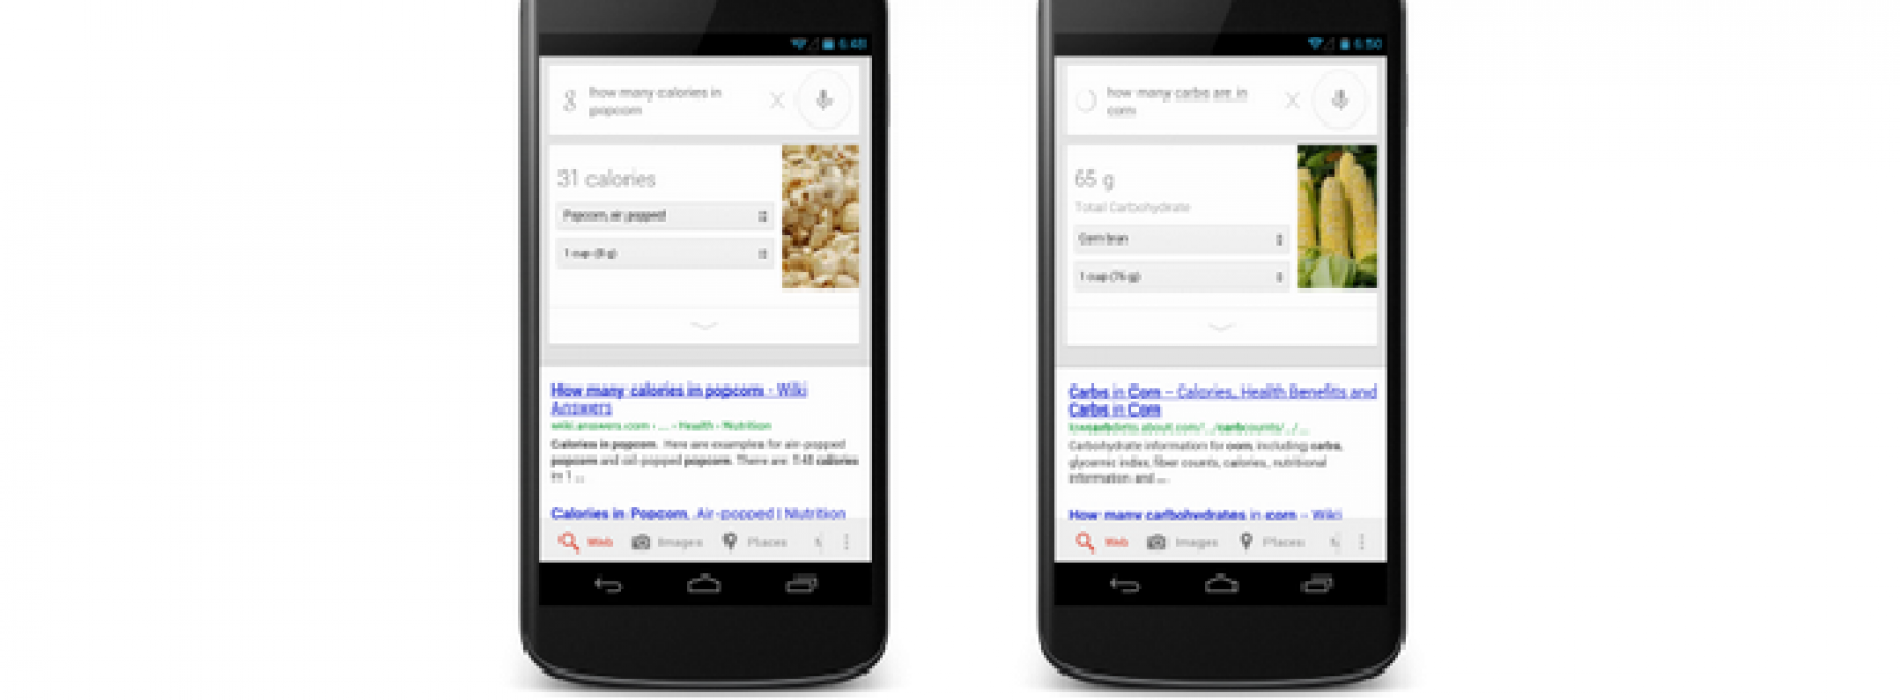 Google adds nutrition info cards to Google Now